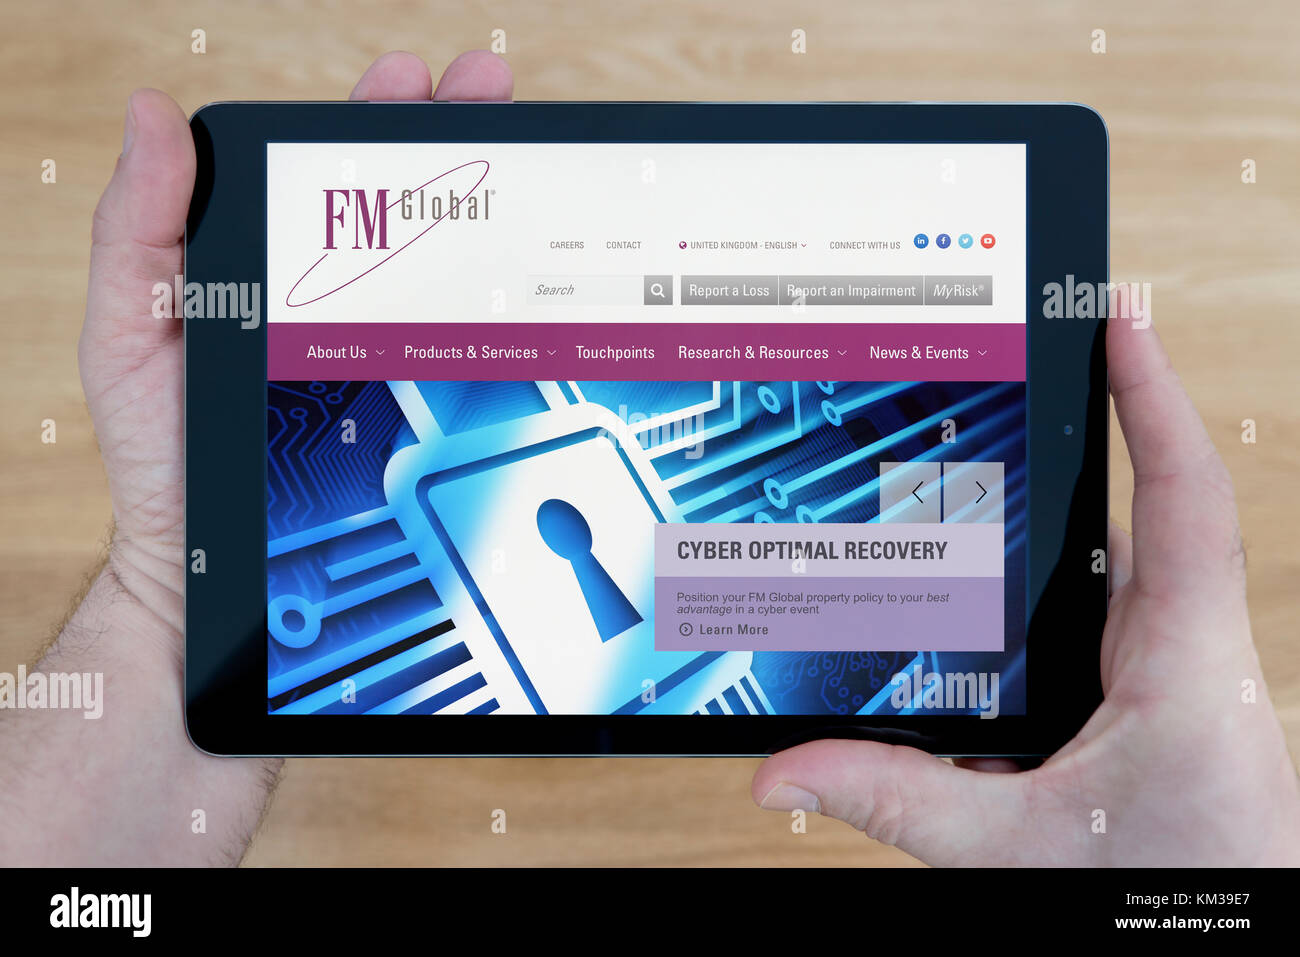 A man looks at the FM Global insurance website on his iPad tablet device, shot against a wooden table top background - Stock Image